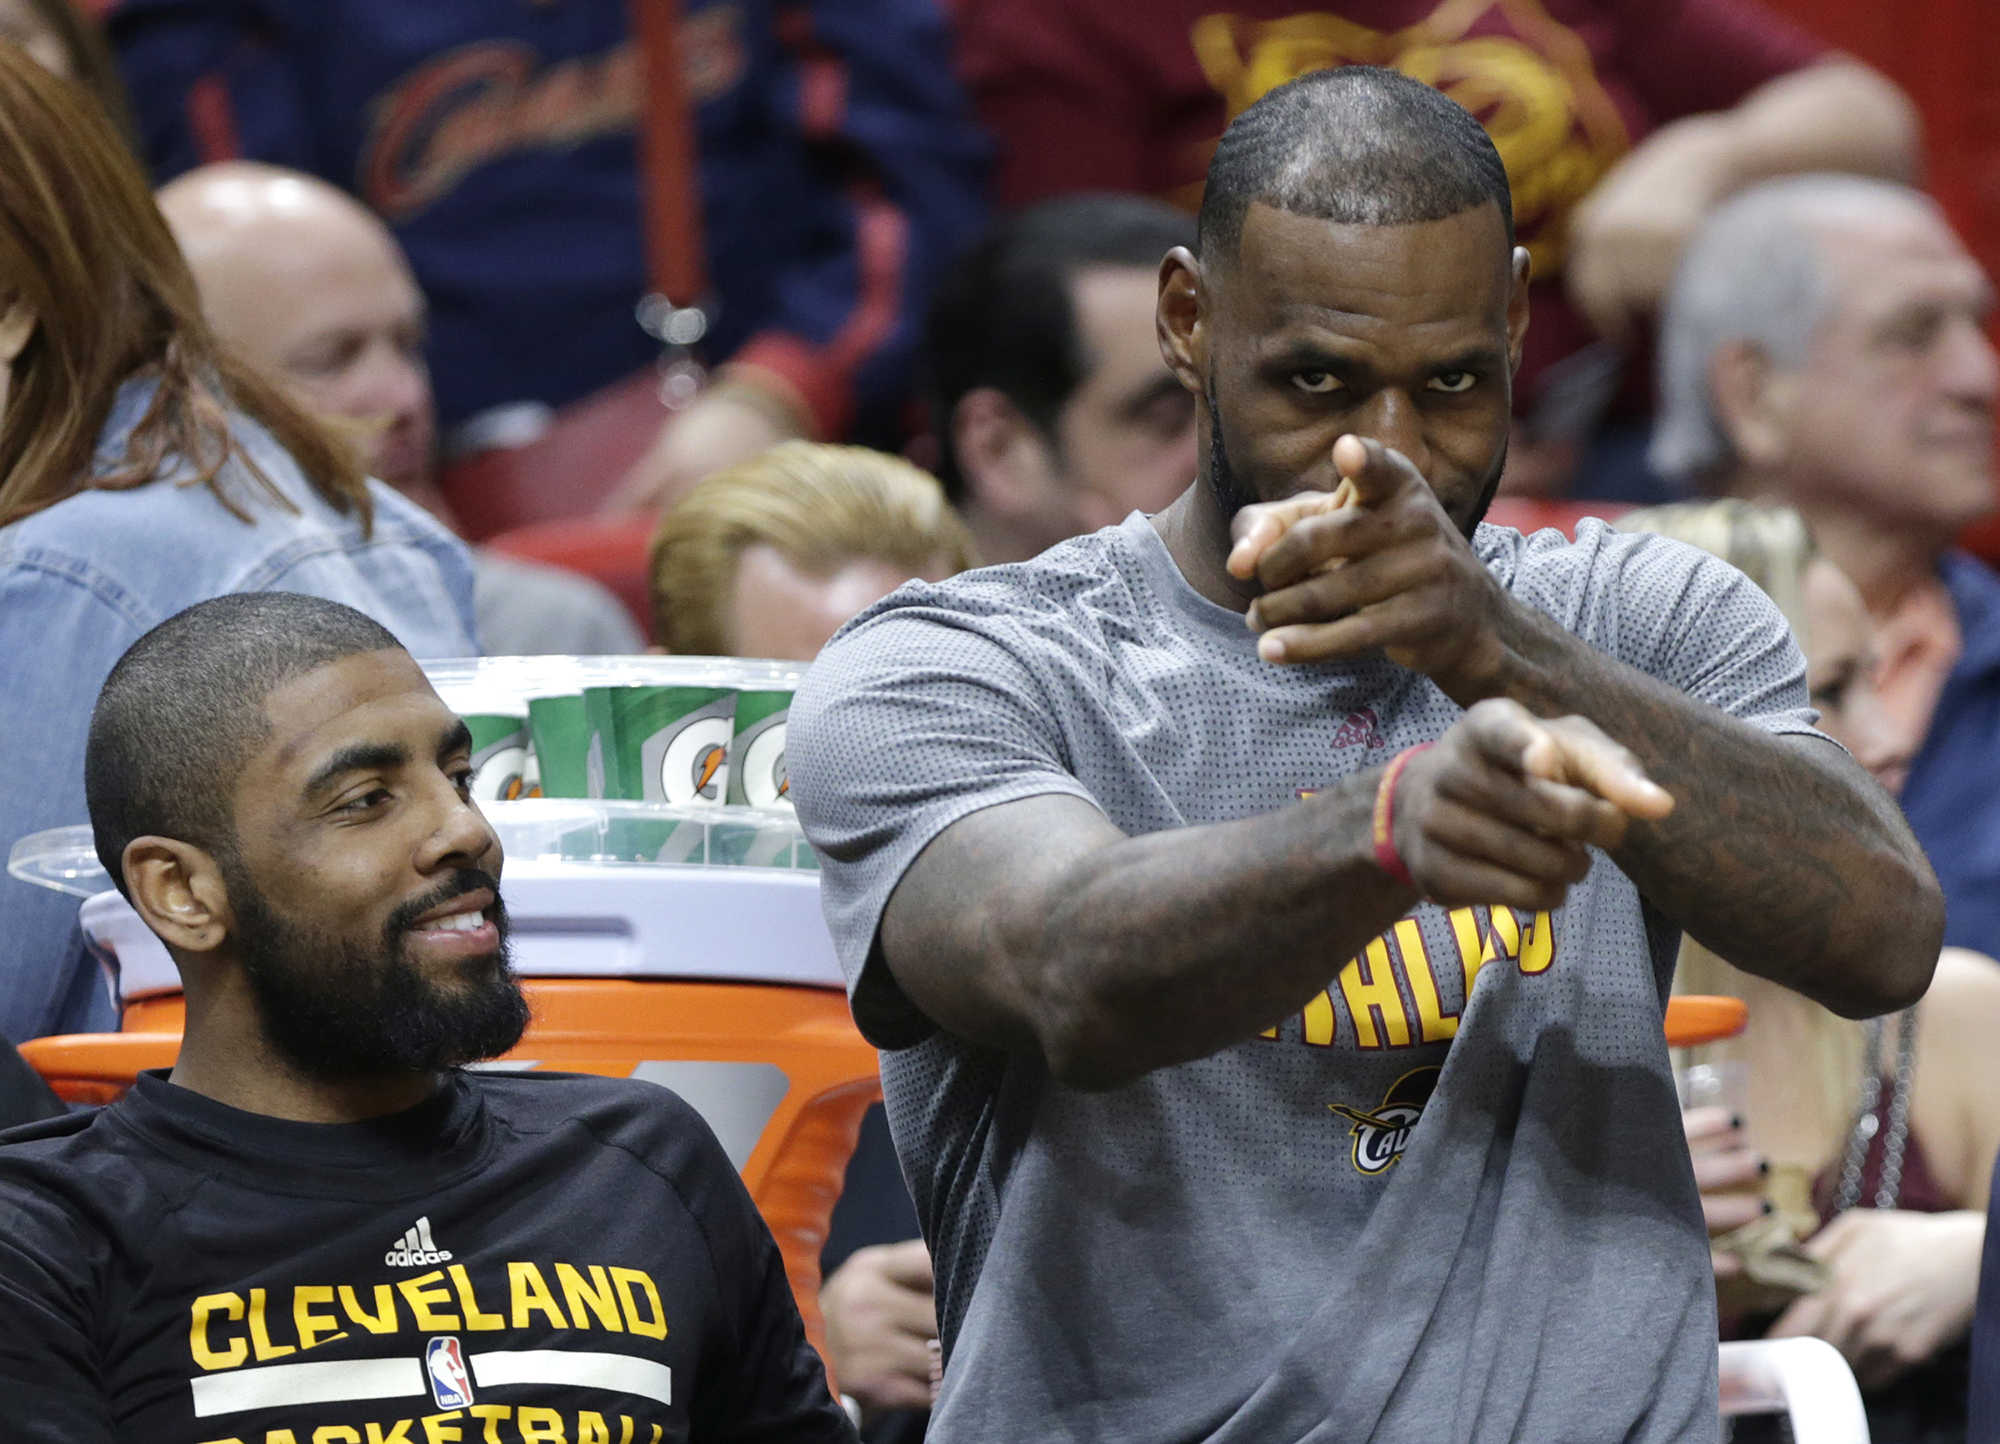 Cleveland Cavaliers' LeBron James, right, gestures as he sits with Kyrie Irving, left, on the bench during the first half of an NBA basketball game against the Miami Heat, Saturday, March 4, 2017, in Miami. (Lynne Sladky/AP)